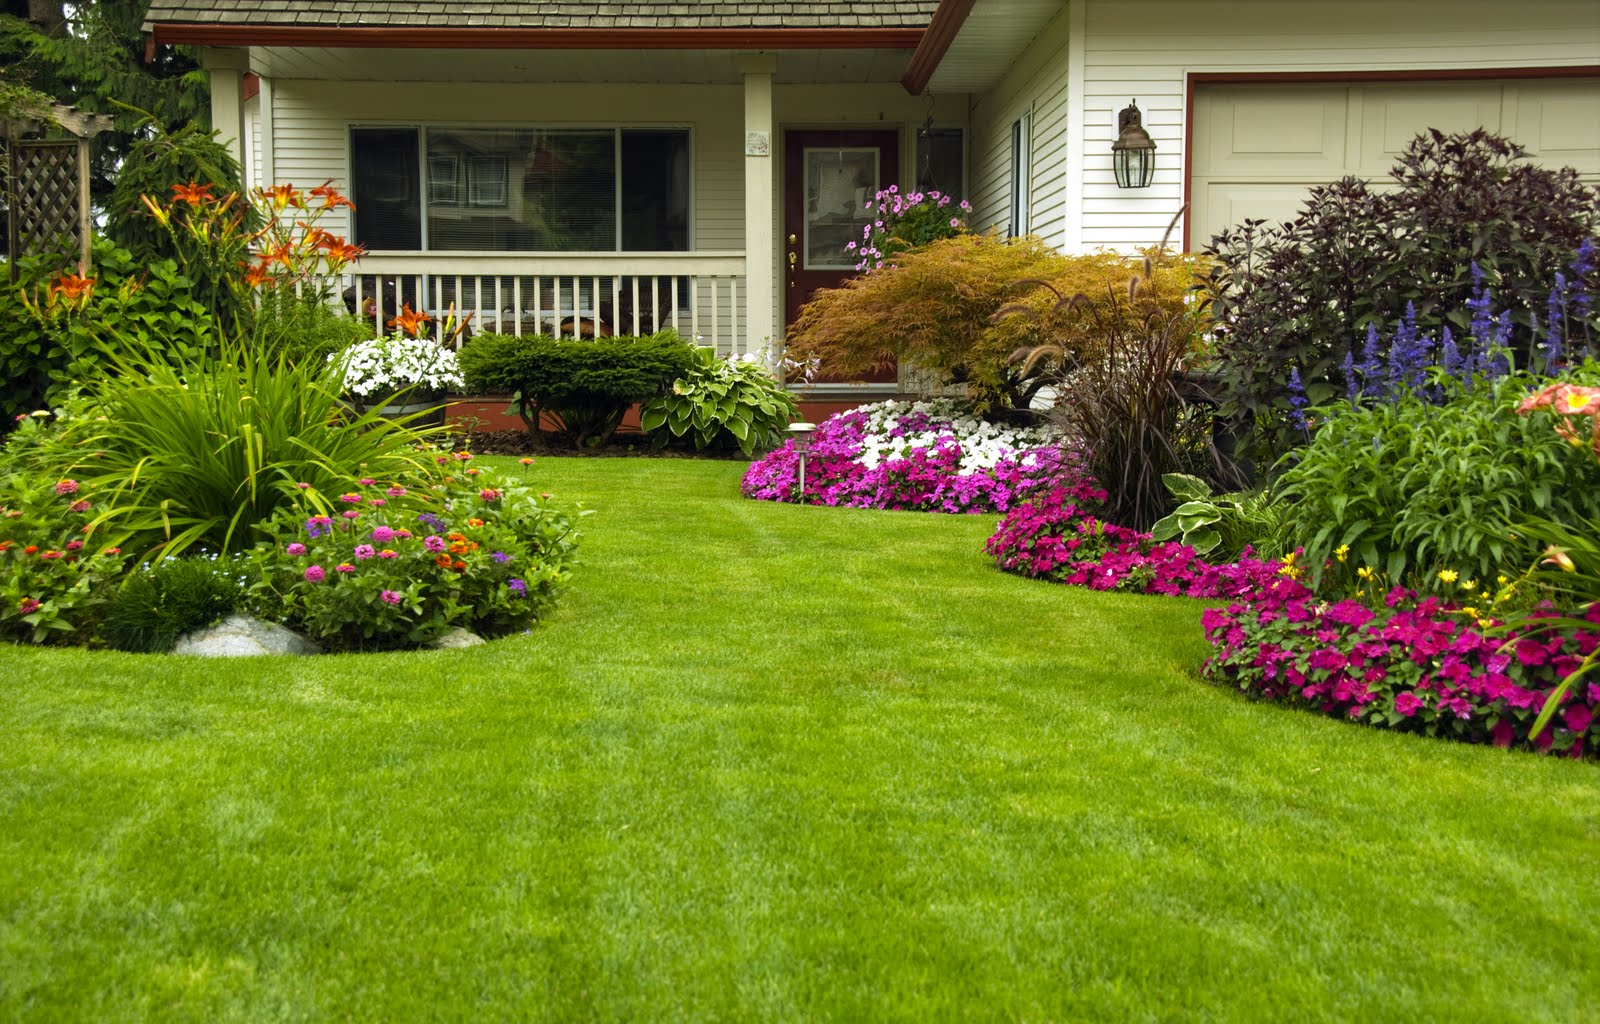 Forth Worth Landscaping